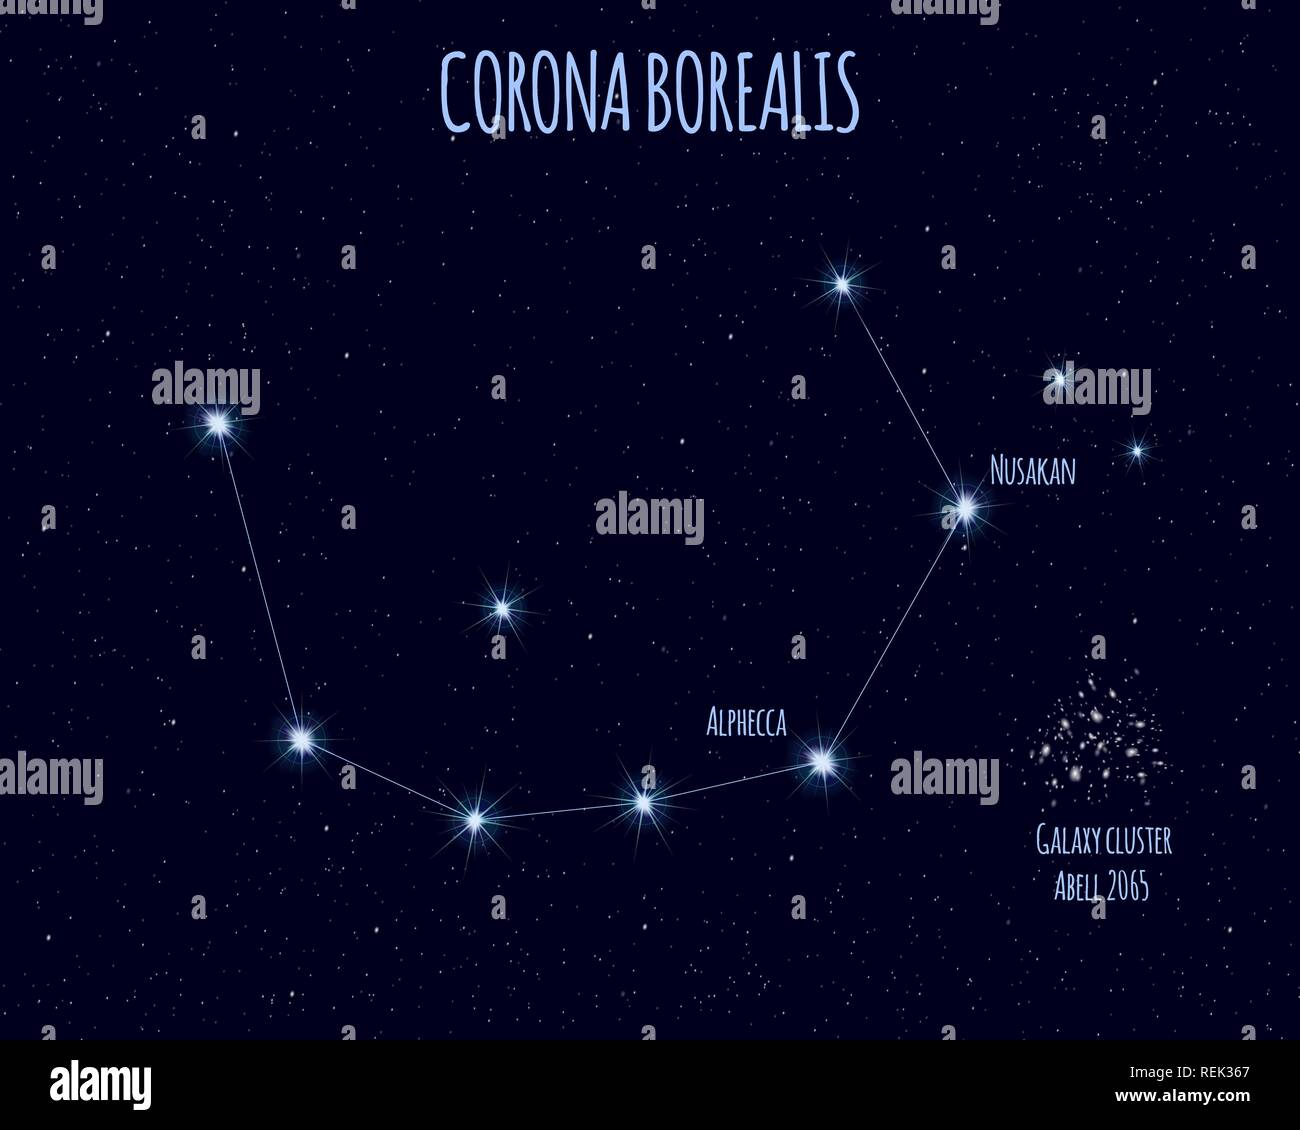 Corona Borealis Northern Crown Constellation Vector Illustration With The Names Of Basic Stars Against The Starry Sky Stock Vector Image Art Alamy